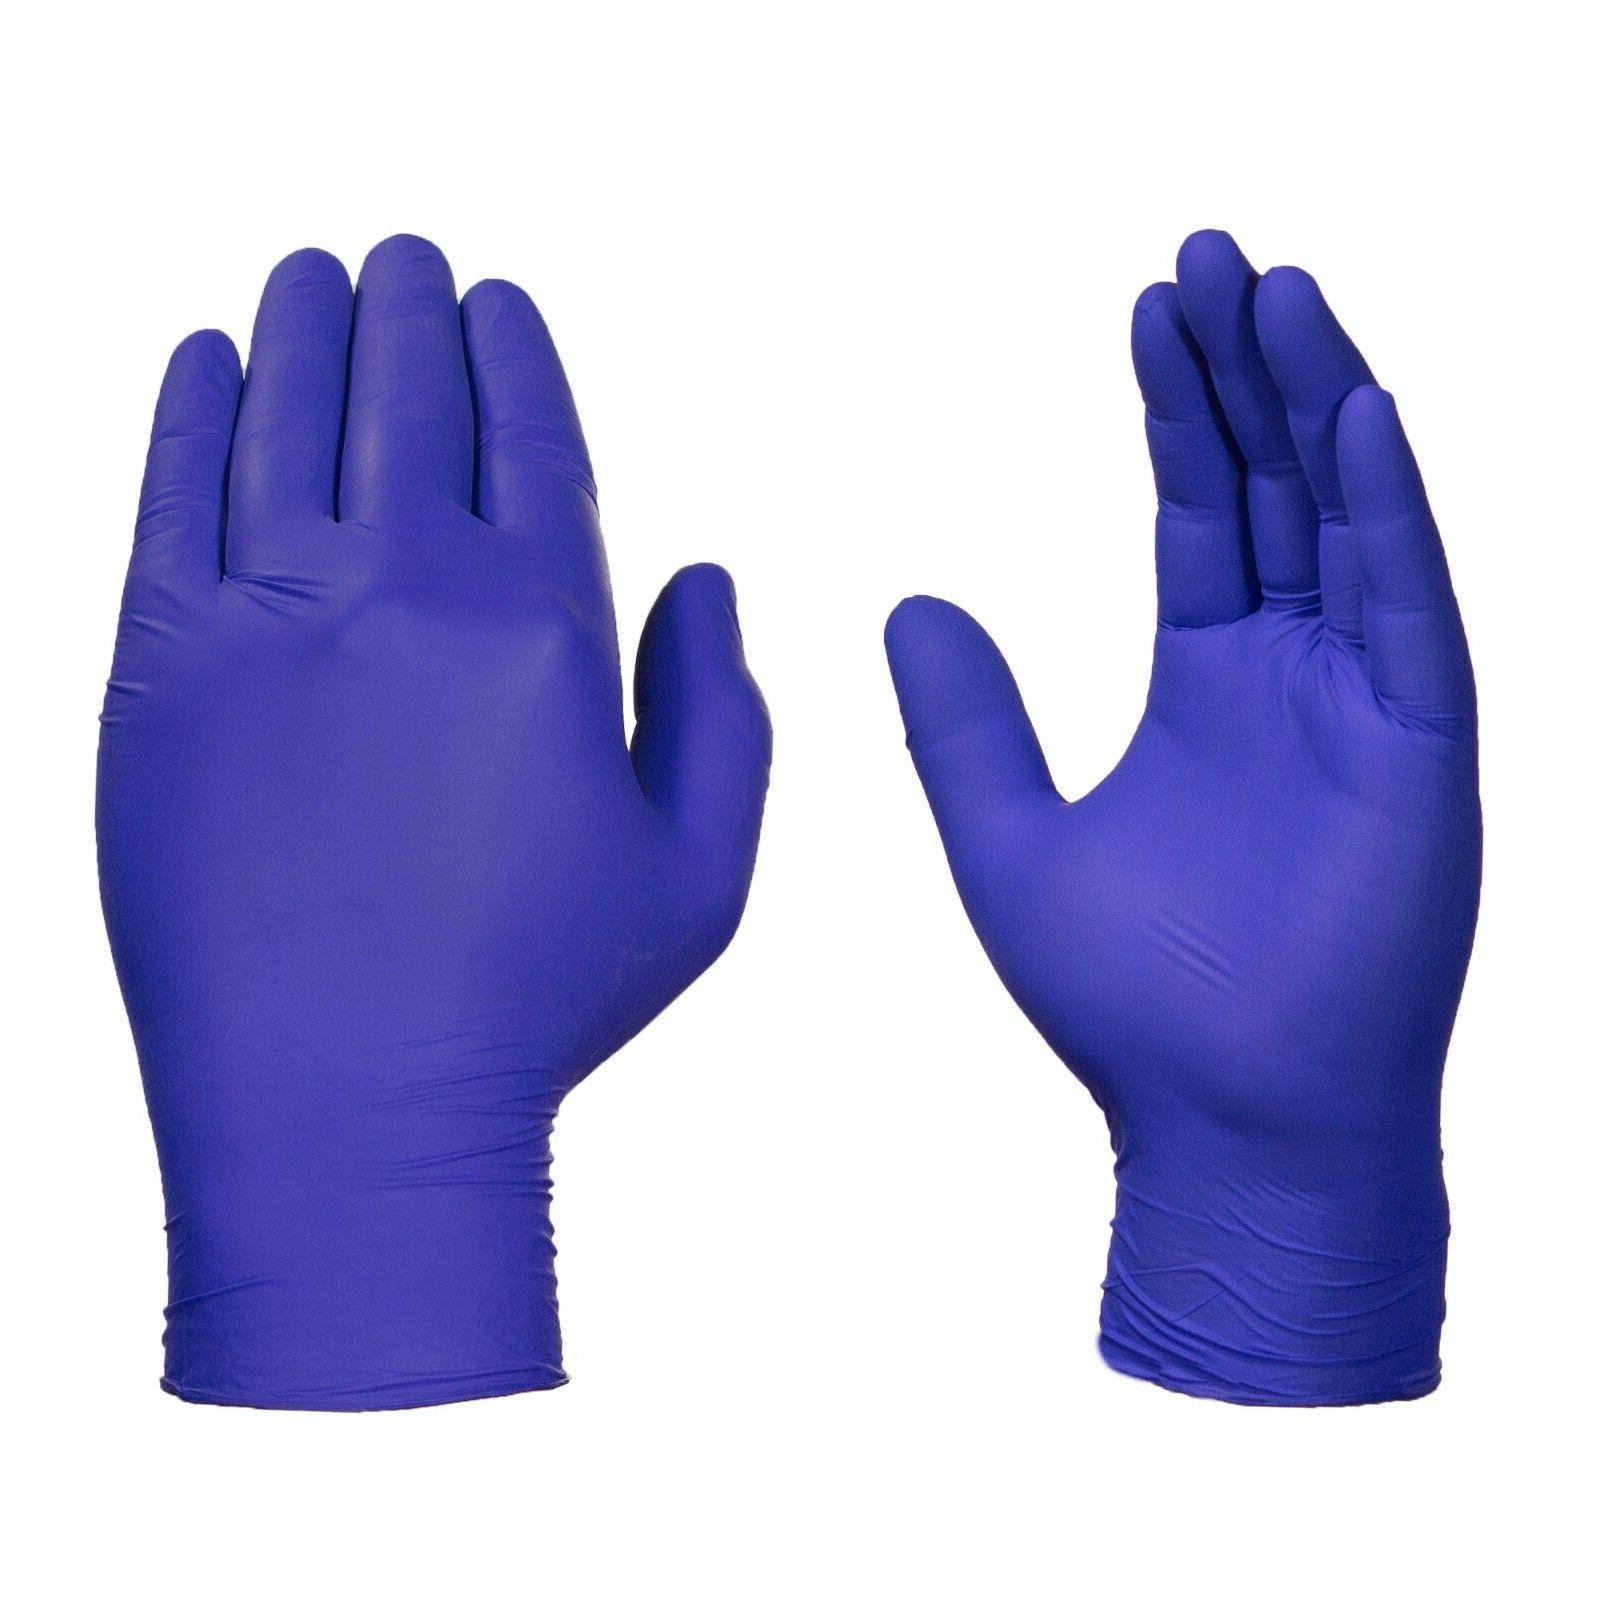 1000/Case Disposable Powder-Free Medical Gloves